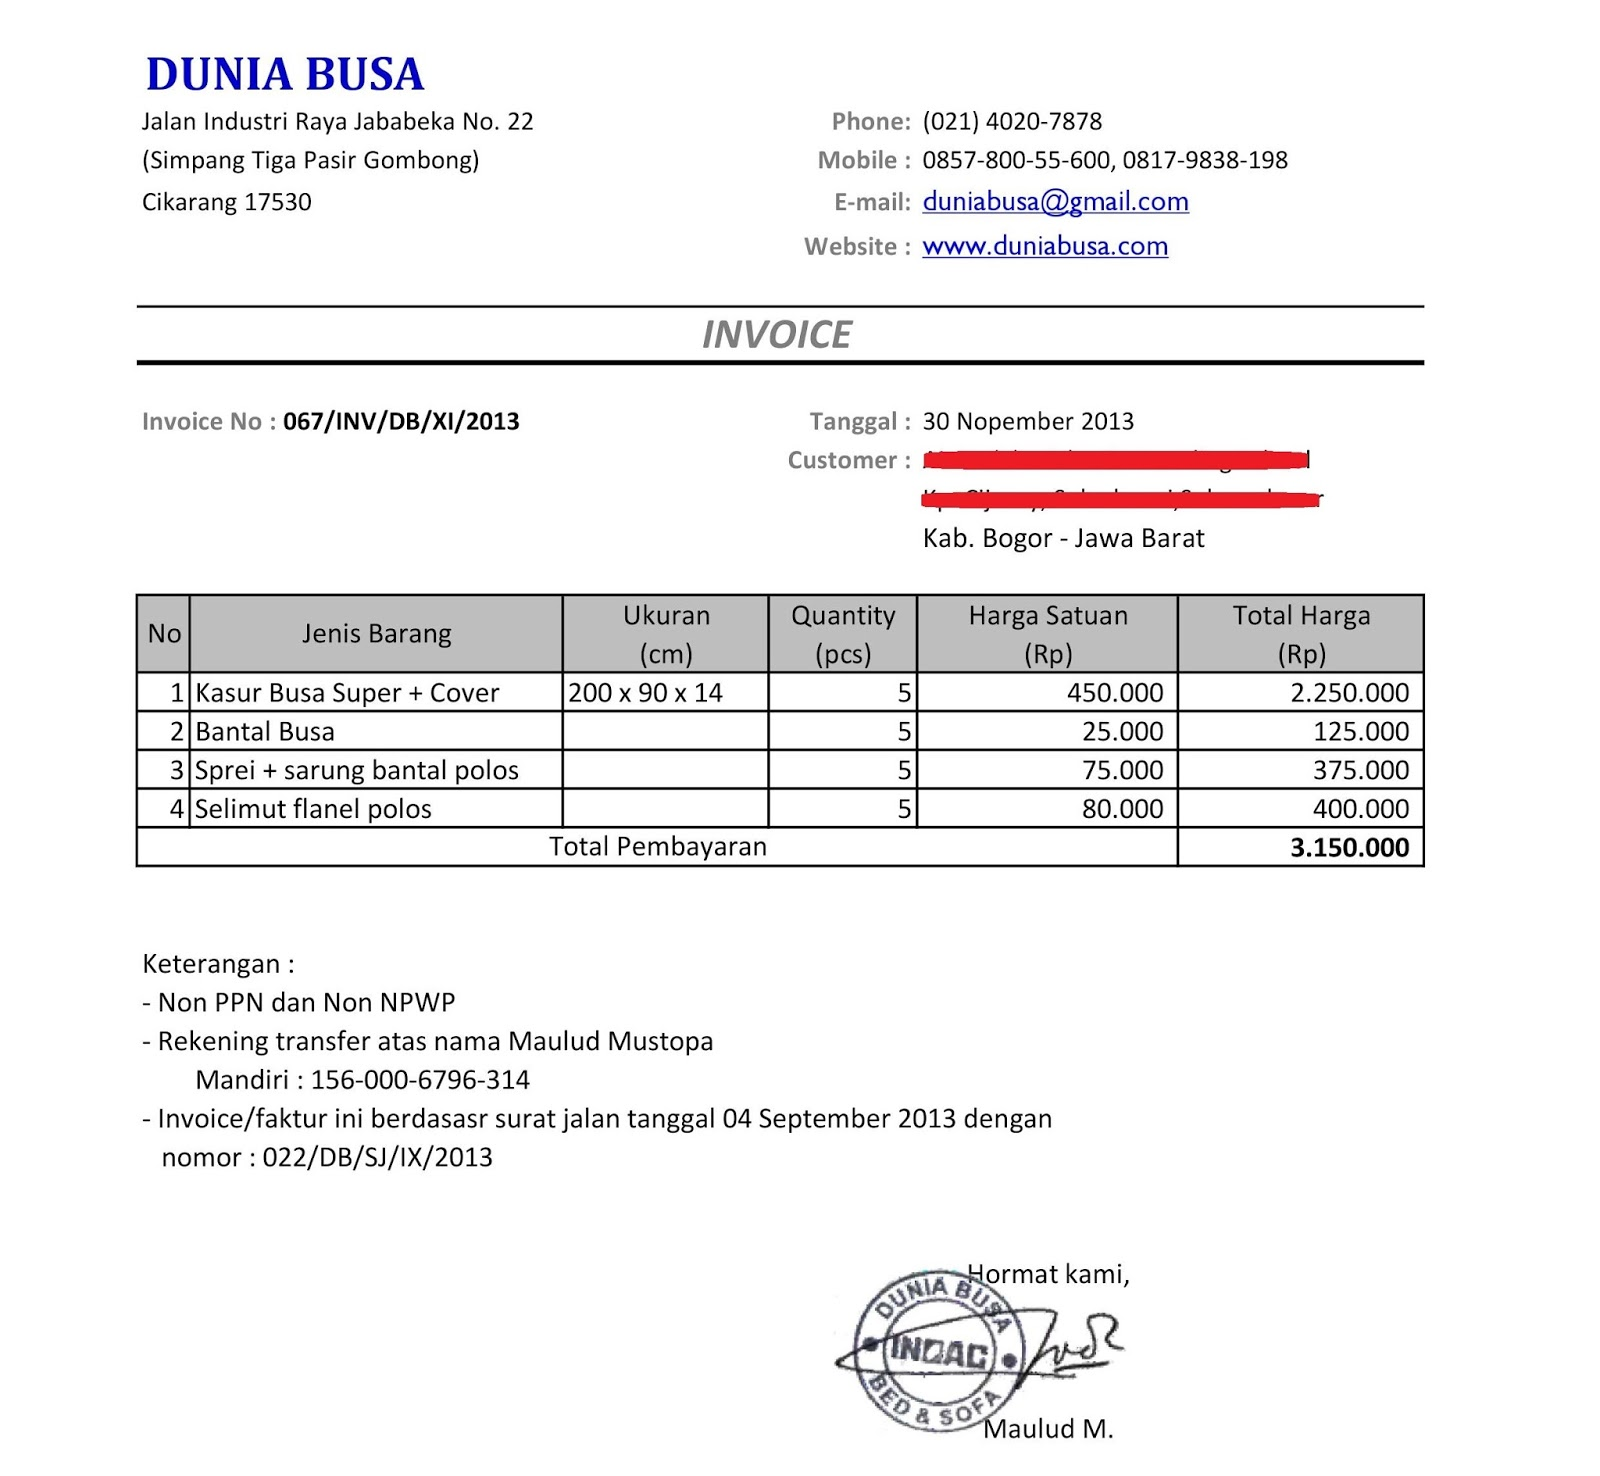 Usdgus  Sweet Free Invoice Online  Create Invoice Online  Invoice Template  With Outstanding Contoh Format Invoice Atau Surat Tagihan  Brankas Arsip  Free Invoice Online With Extraordinary Invoice Word Template Also Excel Invoice In Addition Aynax Invoice Login And My Invoices And Estimates As Well As Billing Invoice Template Additionally What Is A Paypal Invoice From Sklepco With Usdgus  Outstanding Free Invoice Online  Create Invoice Online  Invoice Template  With Extraordinary Contoh Format Invoice Atau Surat Tagihan  Brankas Arsip  Free Invoice Online And Sweet Invoice Word Template Also Excel Invoice In Addition Aynax Invoice Login From Sklepco